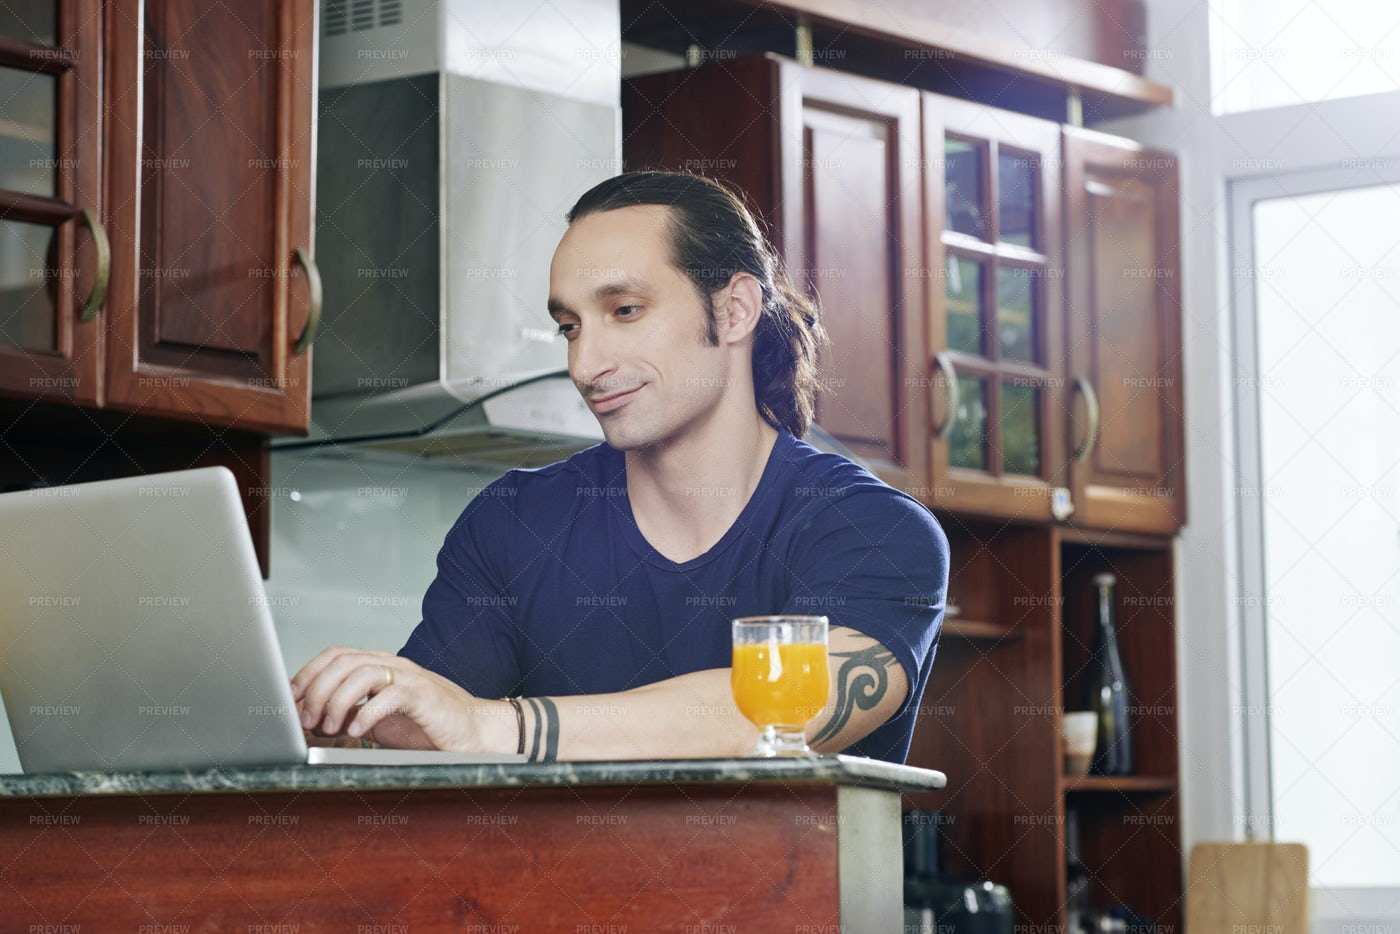 Working Online At Home: Stock Photos